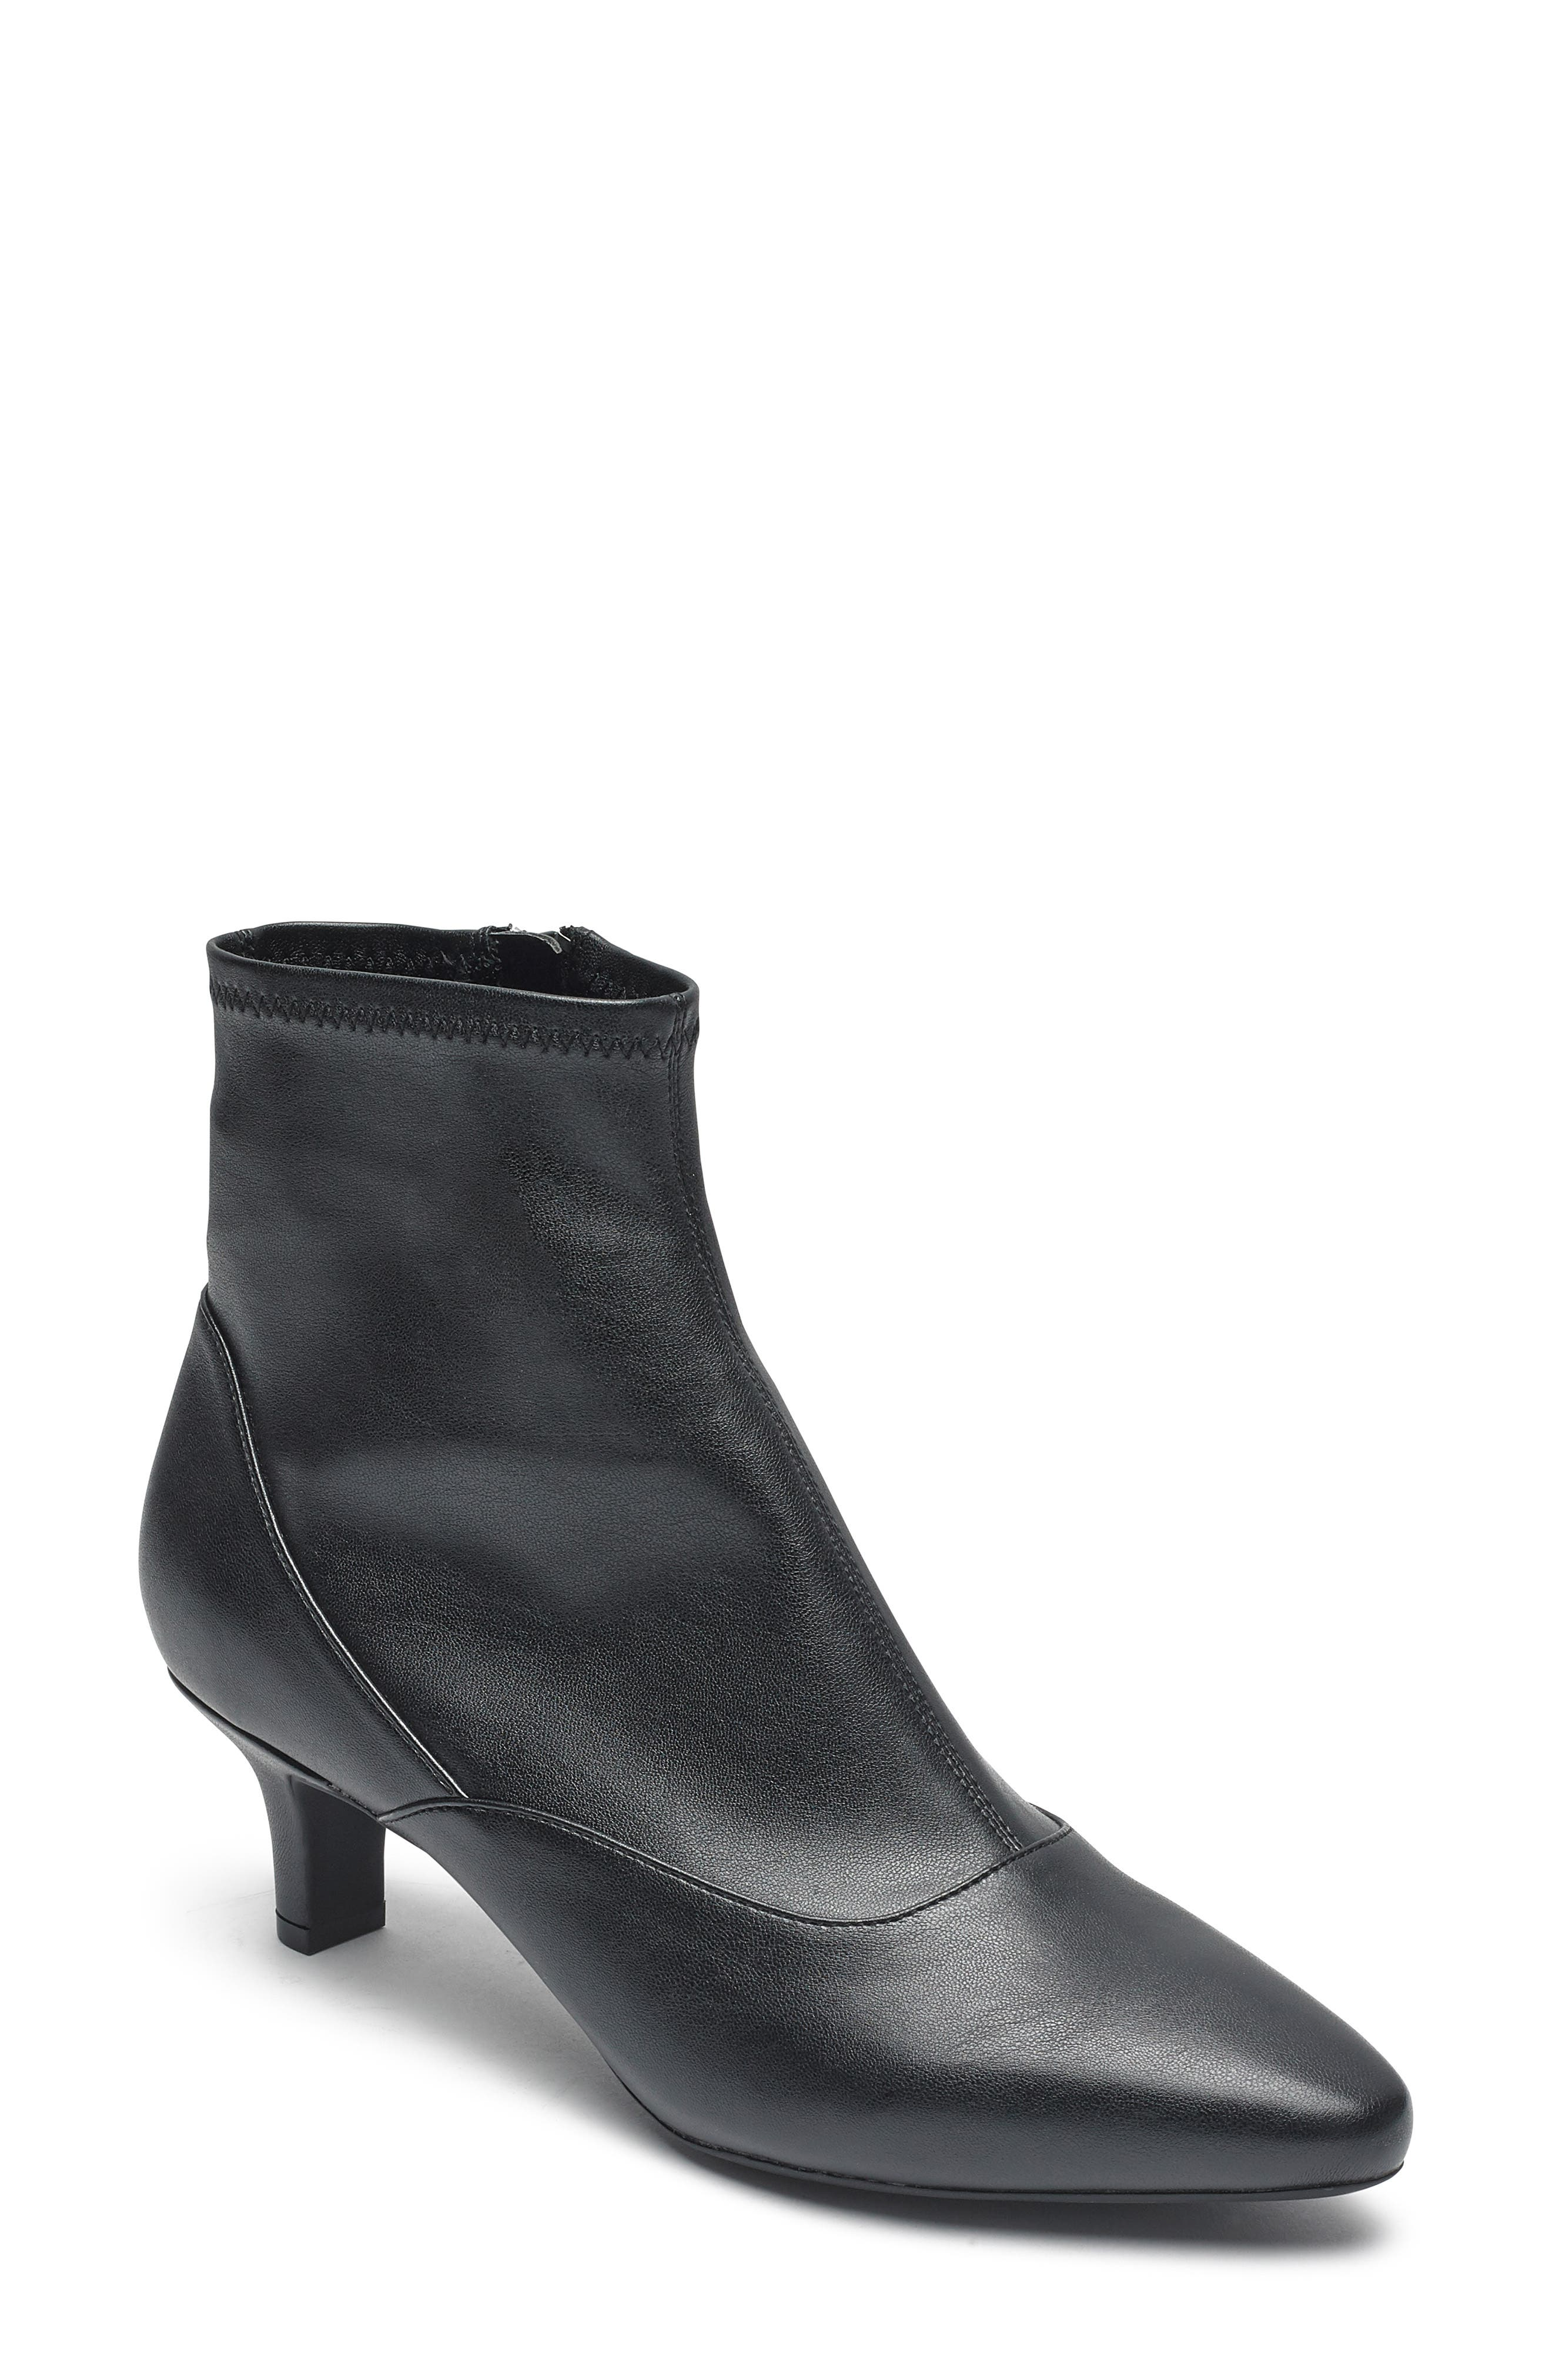 Rockport Kimly Stretch Bootie, Black